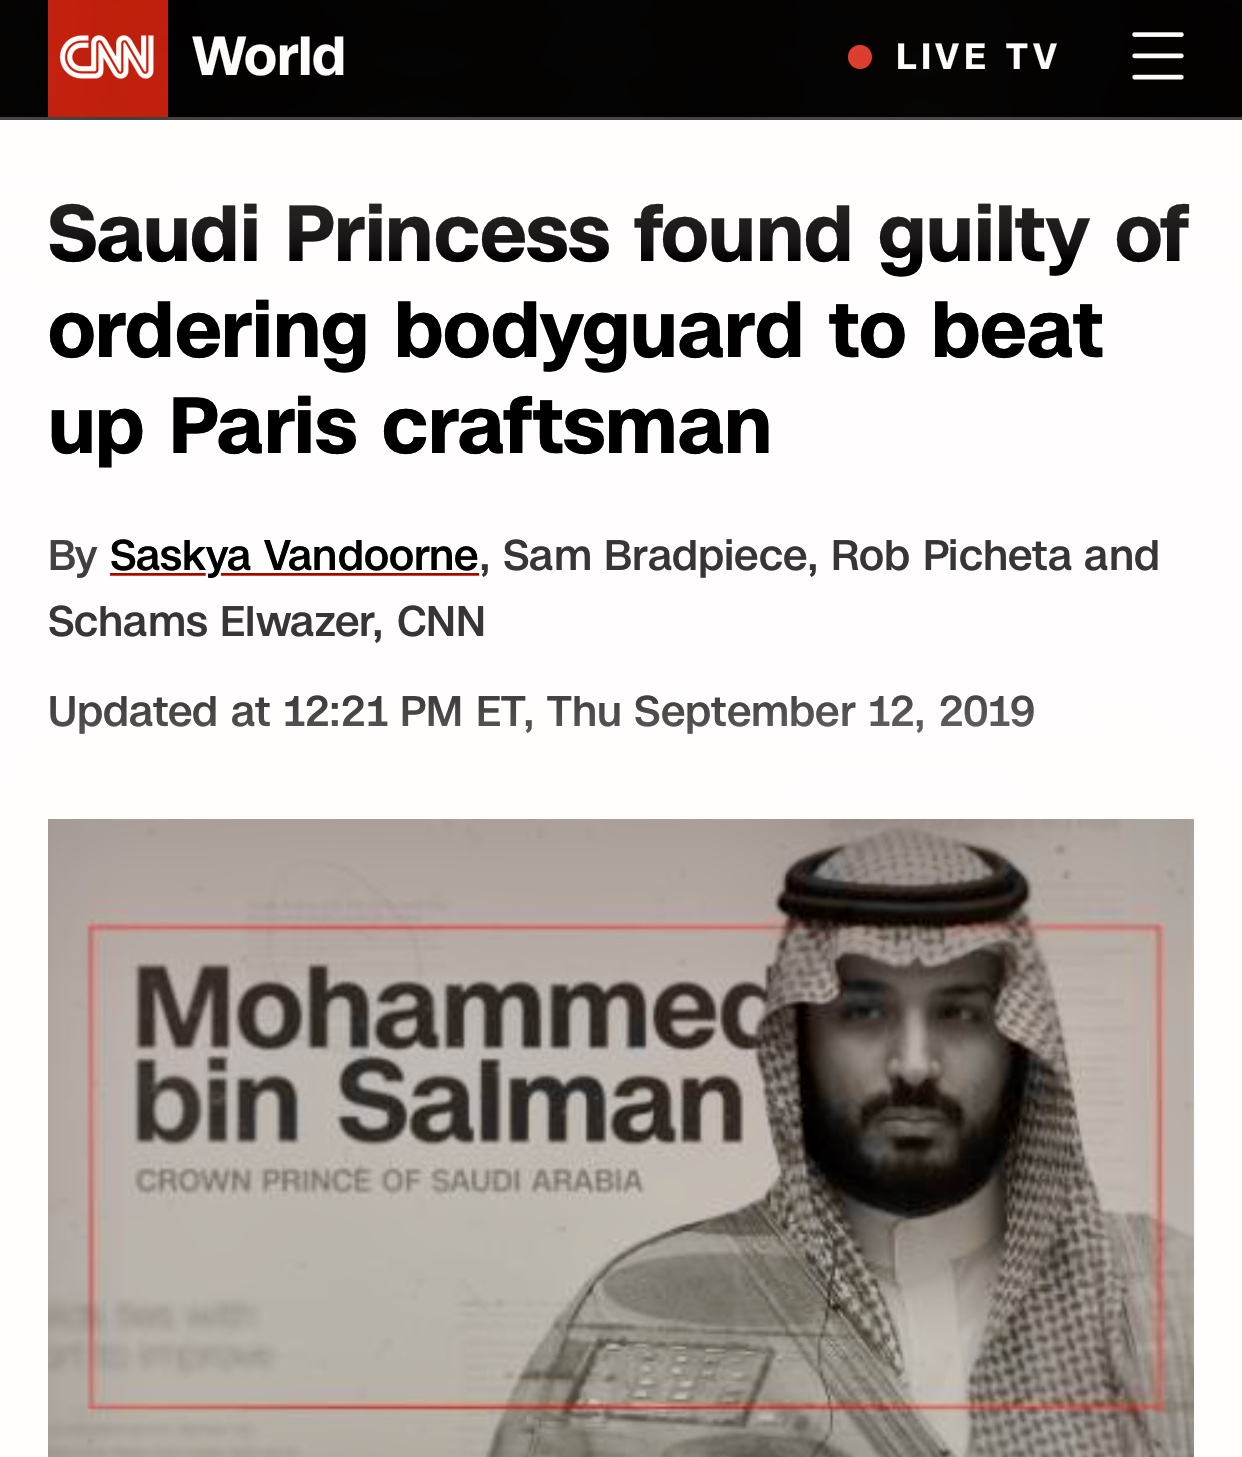 Princess Hassa bint Salman Al Saud found guilty of ordering her bodyguard to beat up a craftsman in Paris